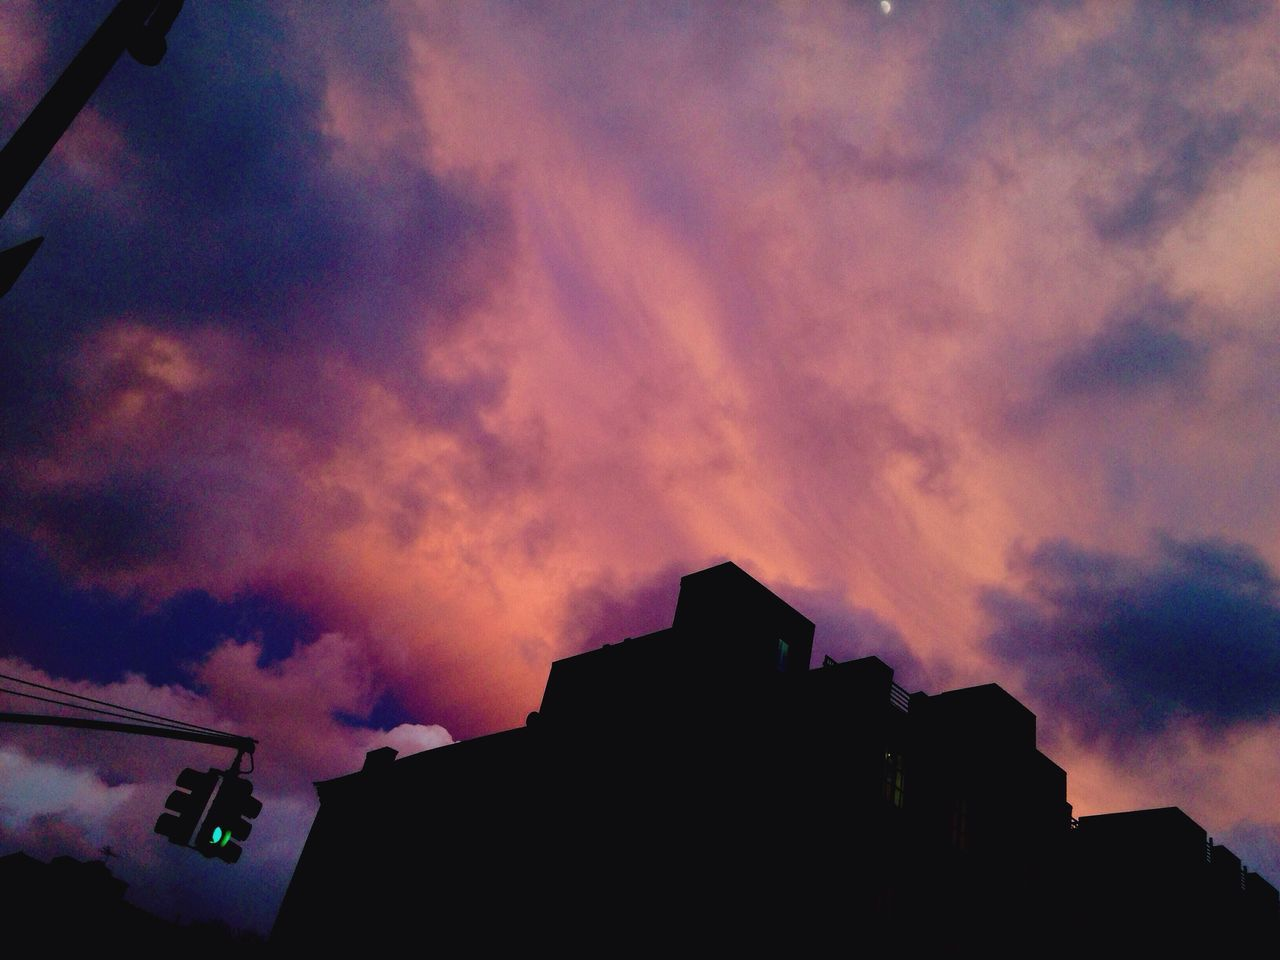 Cotton candy skies Clouds And Sky Cottoncandy Clouds Colors Pink Blue Color Your Life Gradient Bedstuy Brooklyn New York Nightshot Neons HOODLIFE EyeEm Bestsellers Bold Neons, Bright Pastels Urbanity Cityscape Purple Twilight NYC Photography The Changing City Glow